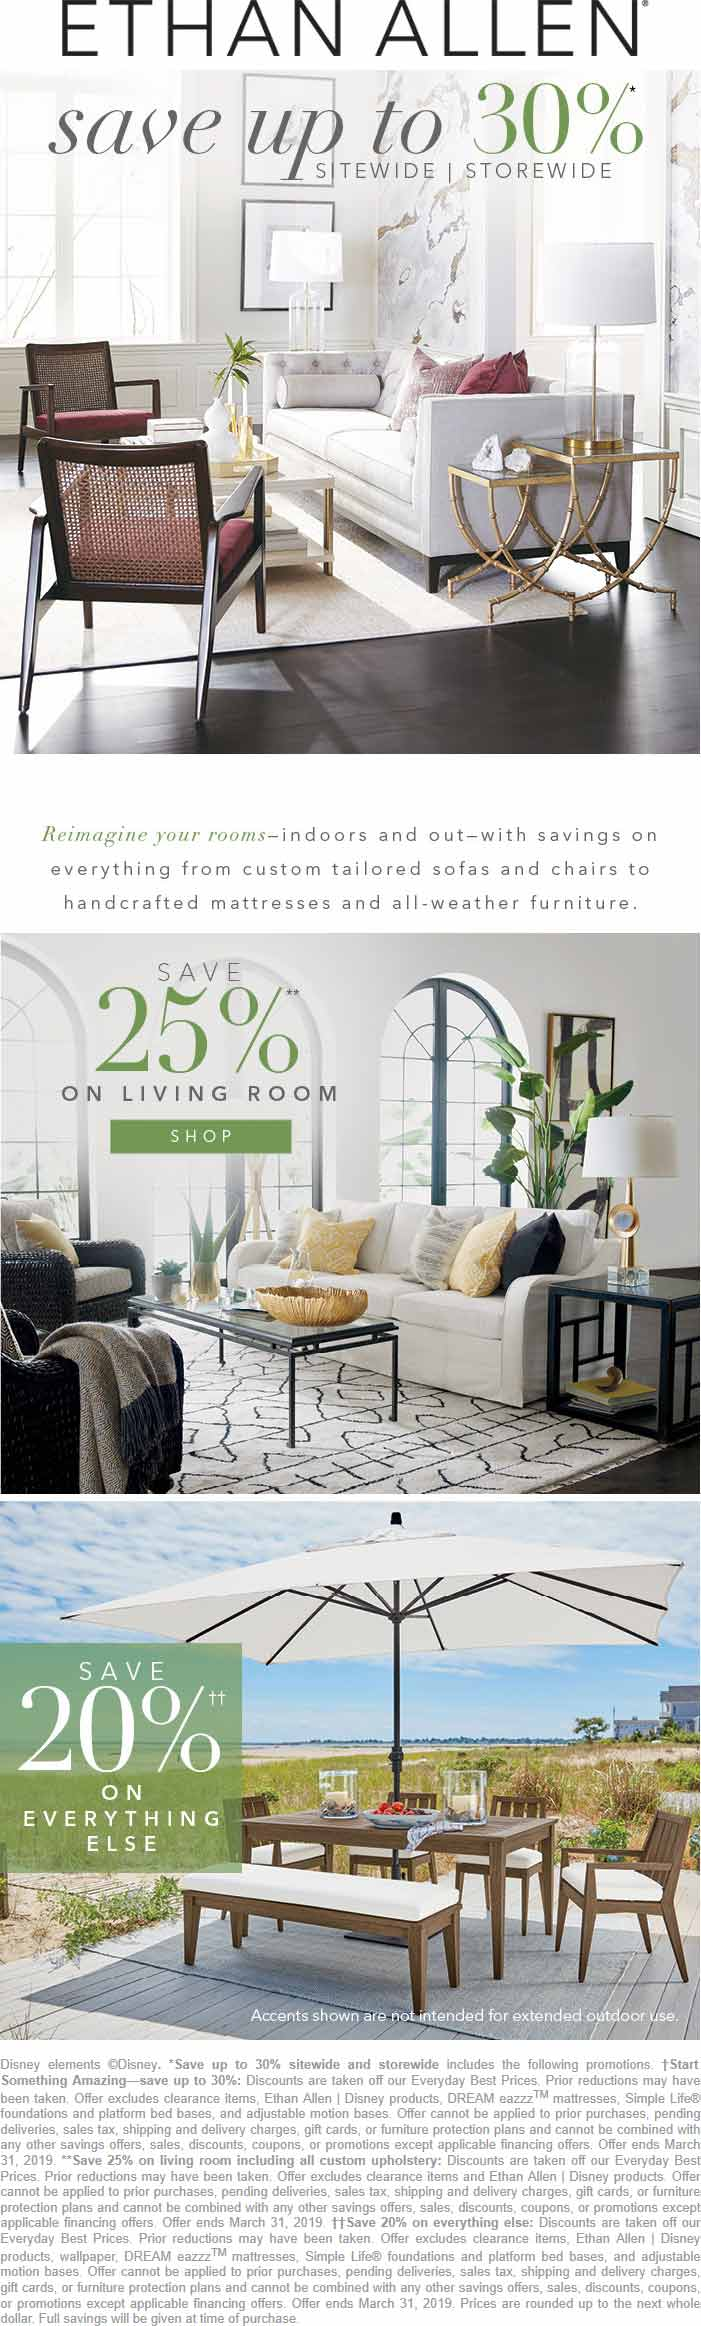 Ethan Allen Coupon December 2019 20-30% off everything today at Ethan Allen, ditto online